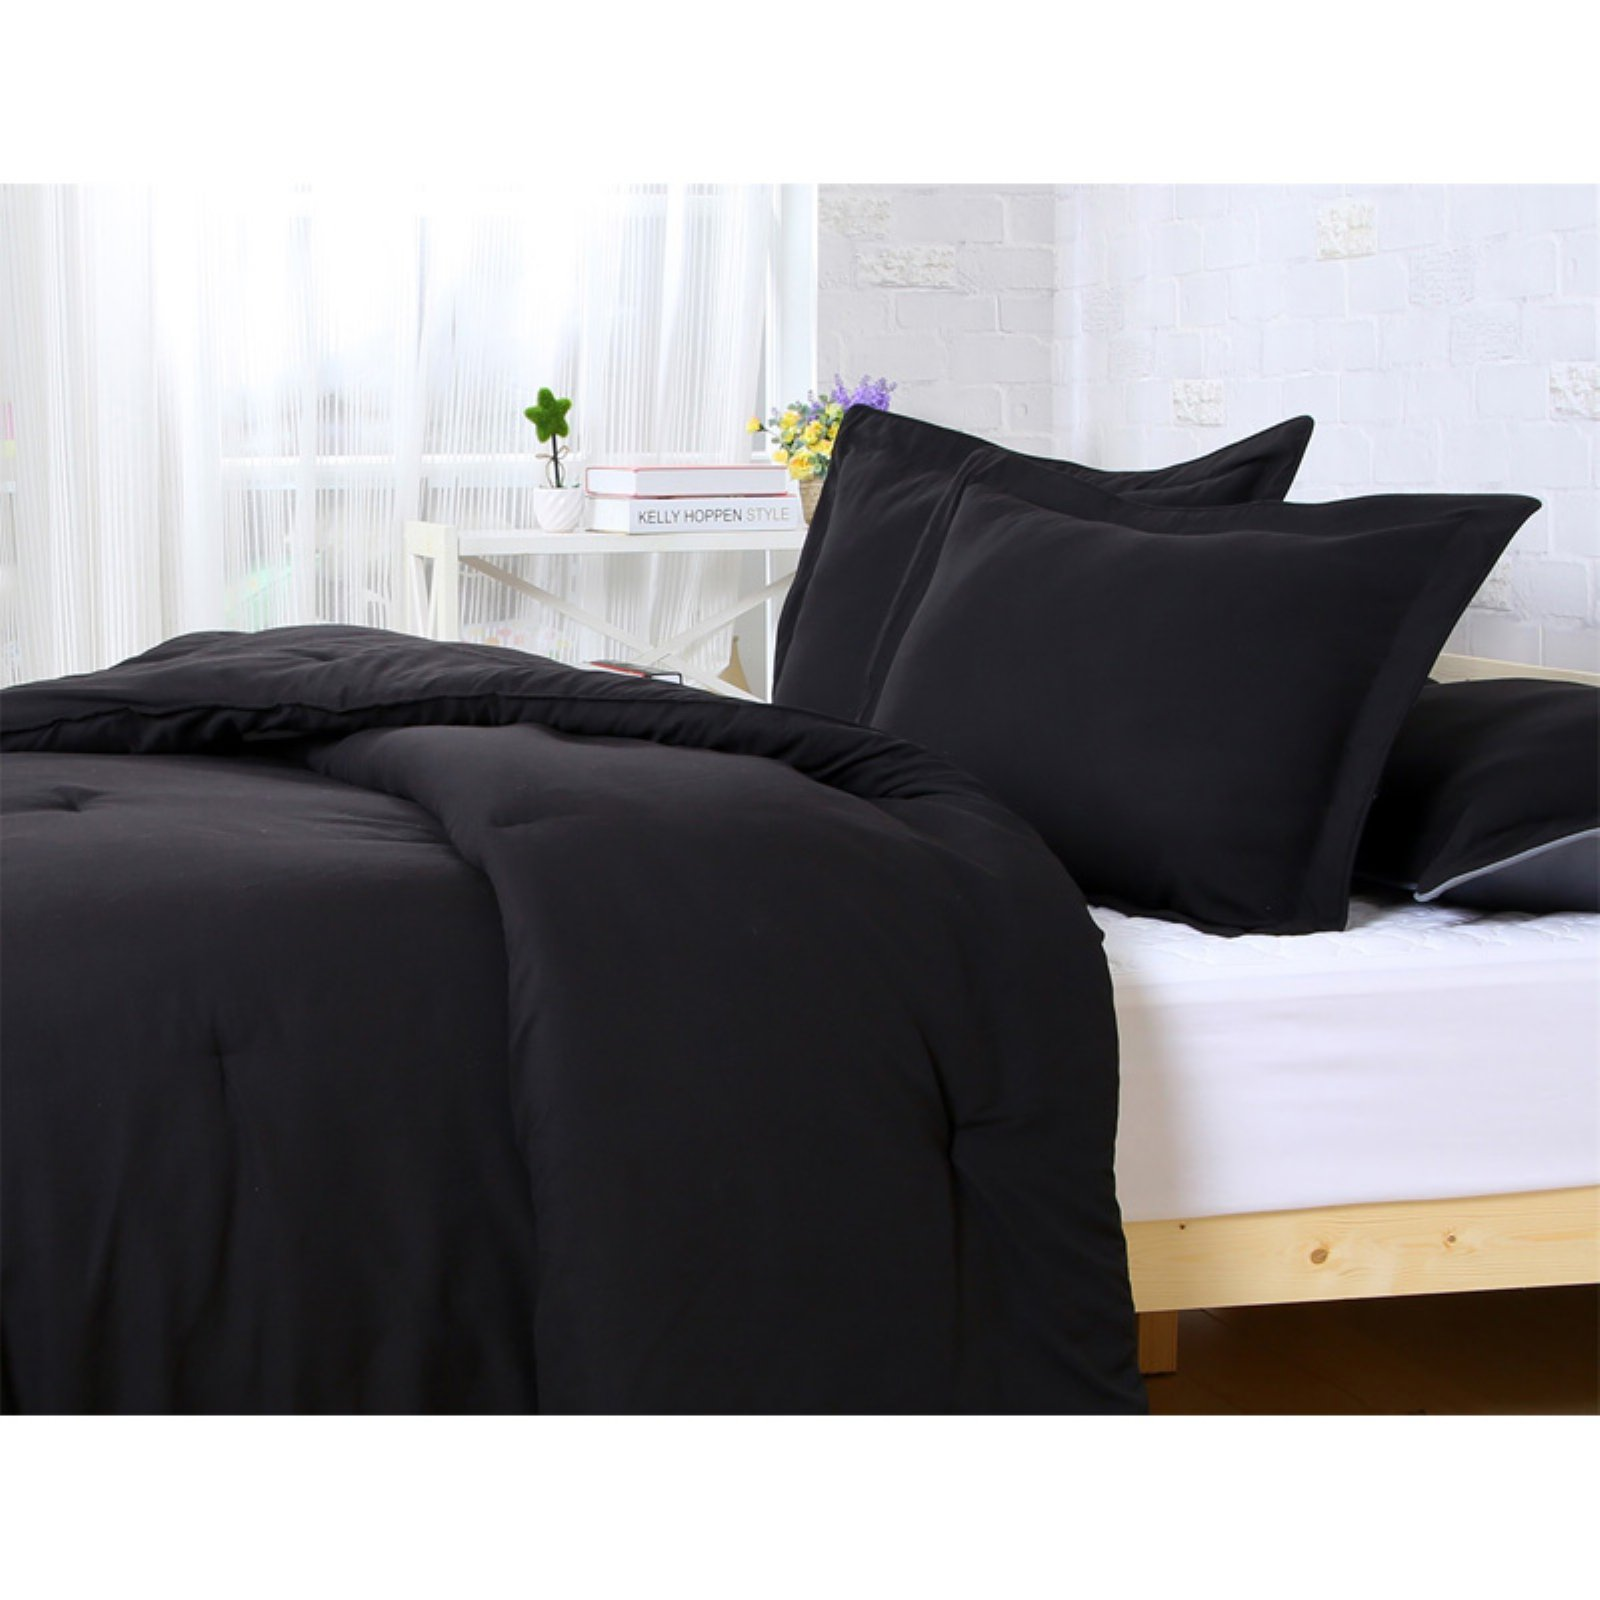 Image of Microfiber Comforter Set by Affluence